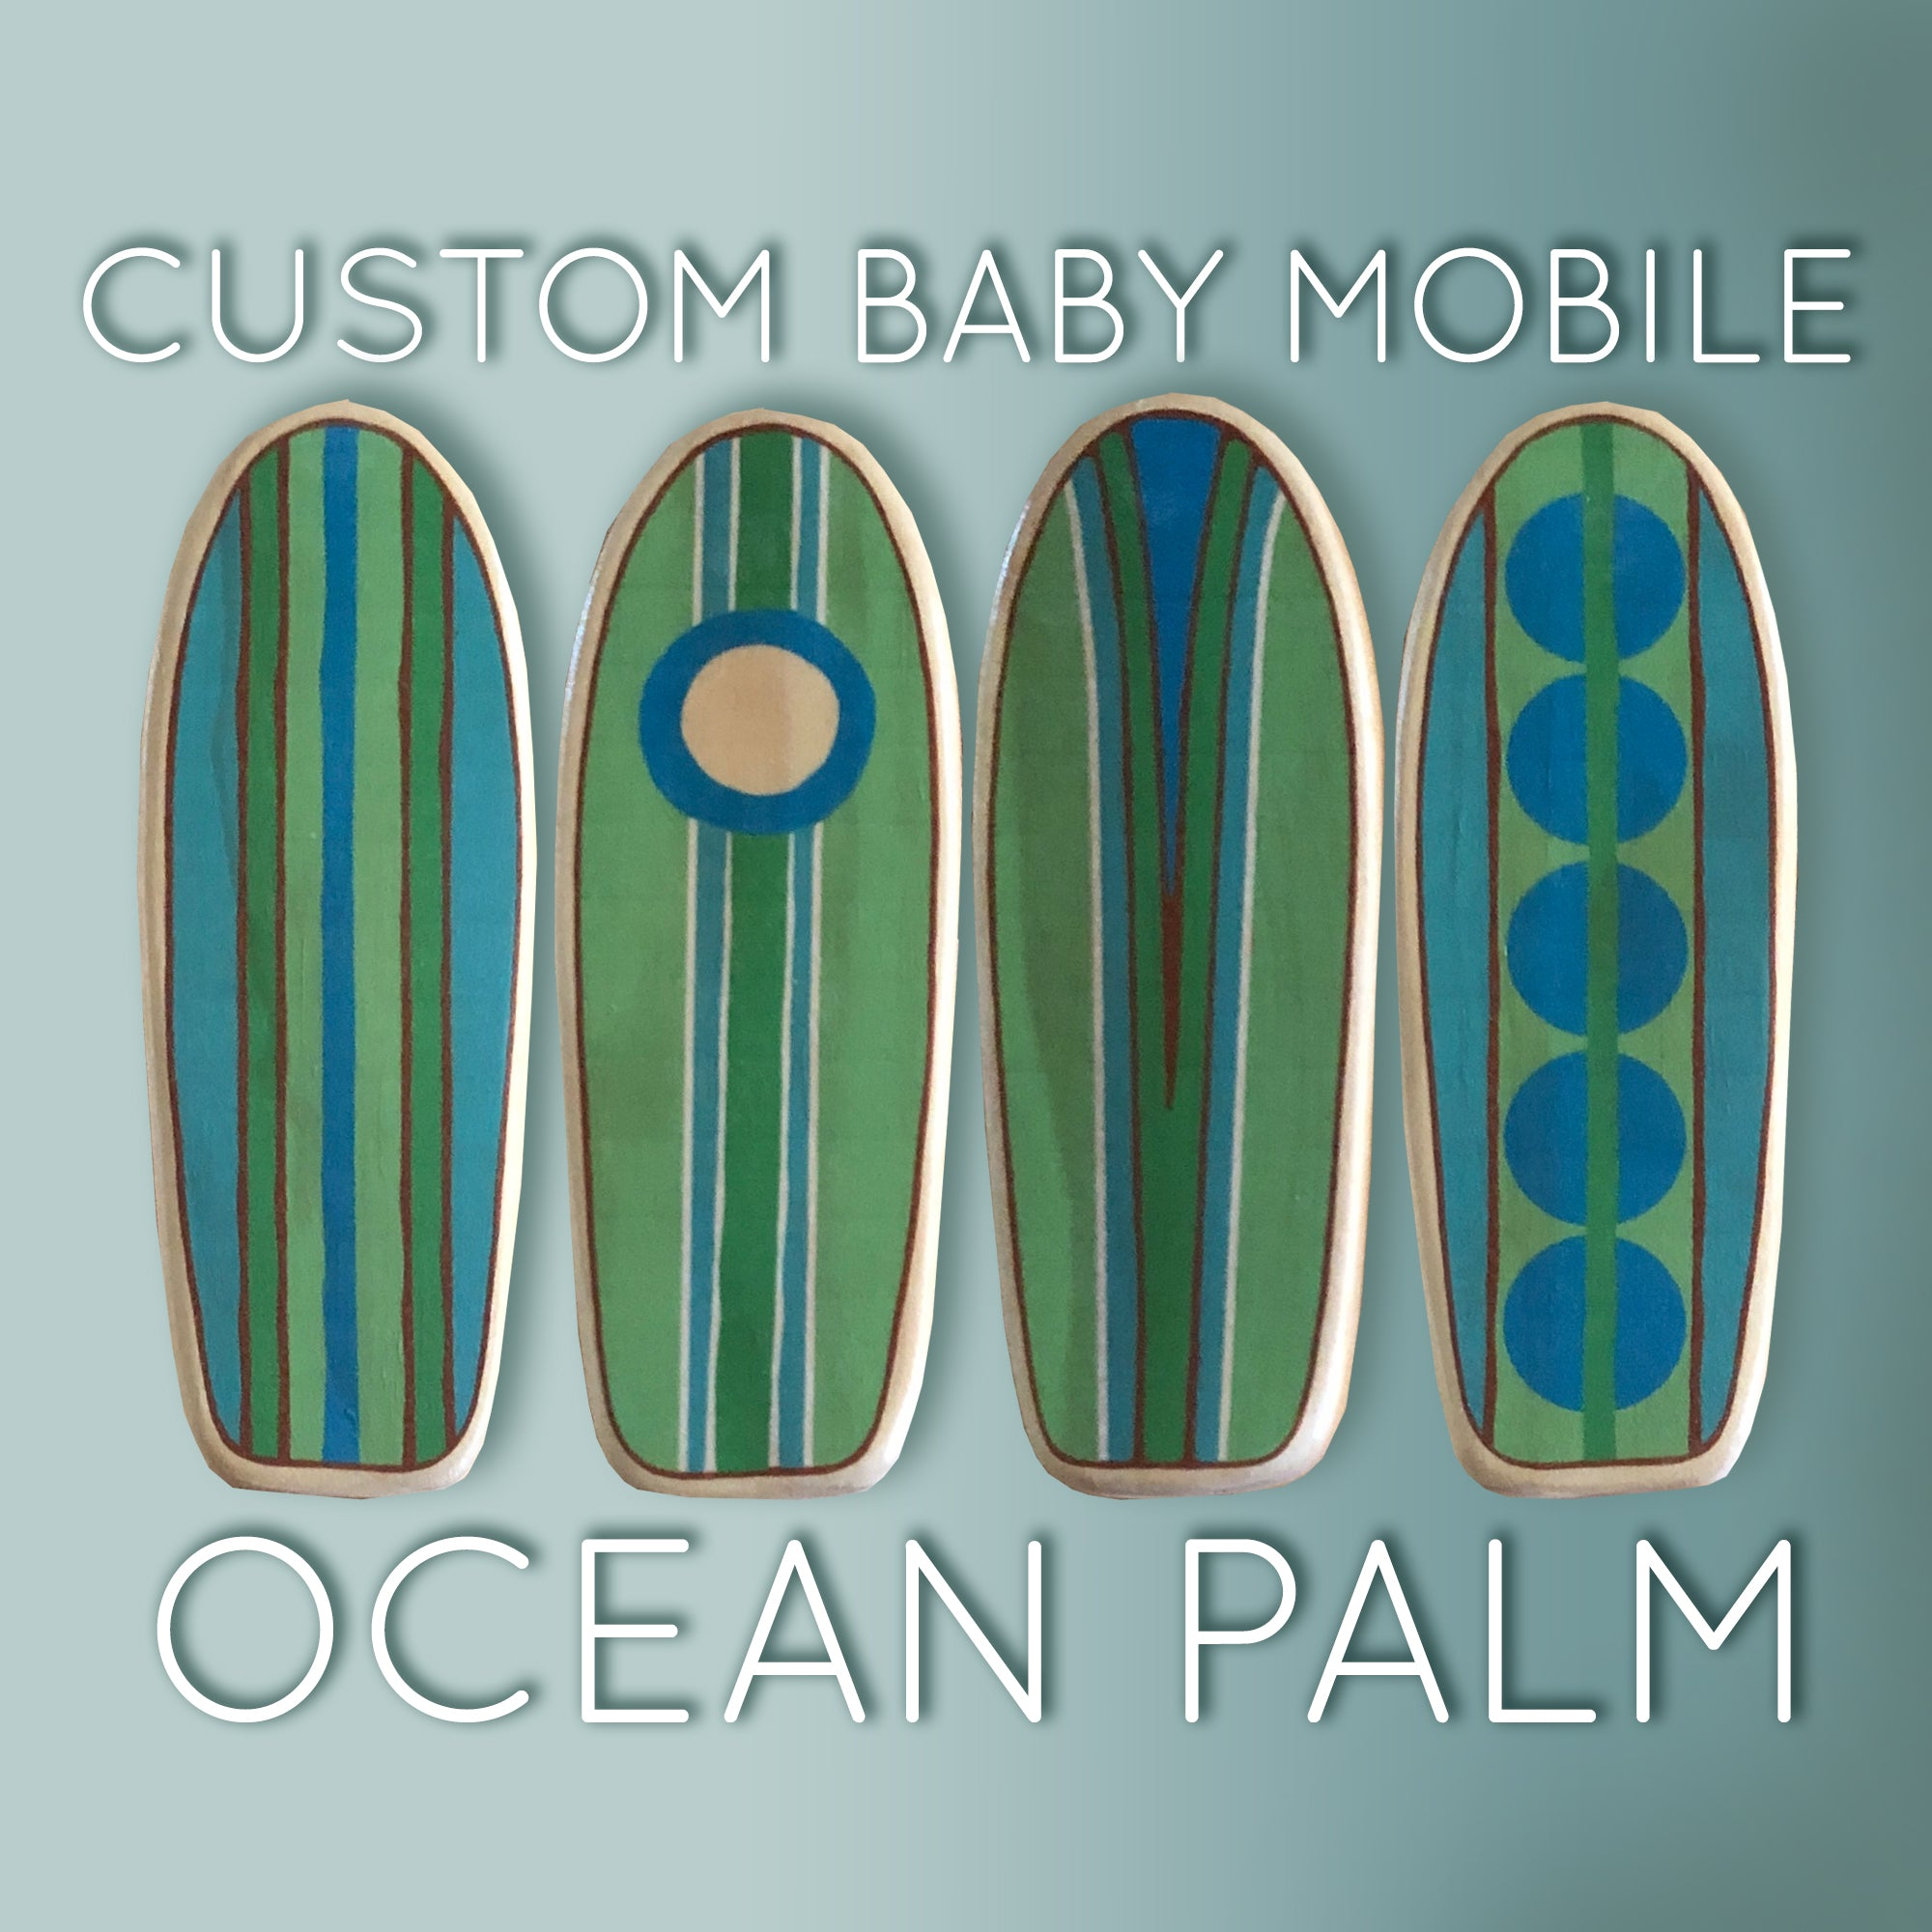 surfboards with shades of blue, green and teal for a gender neutral baby room